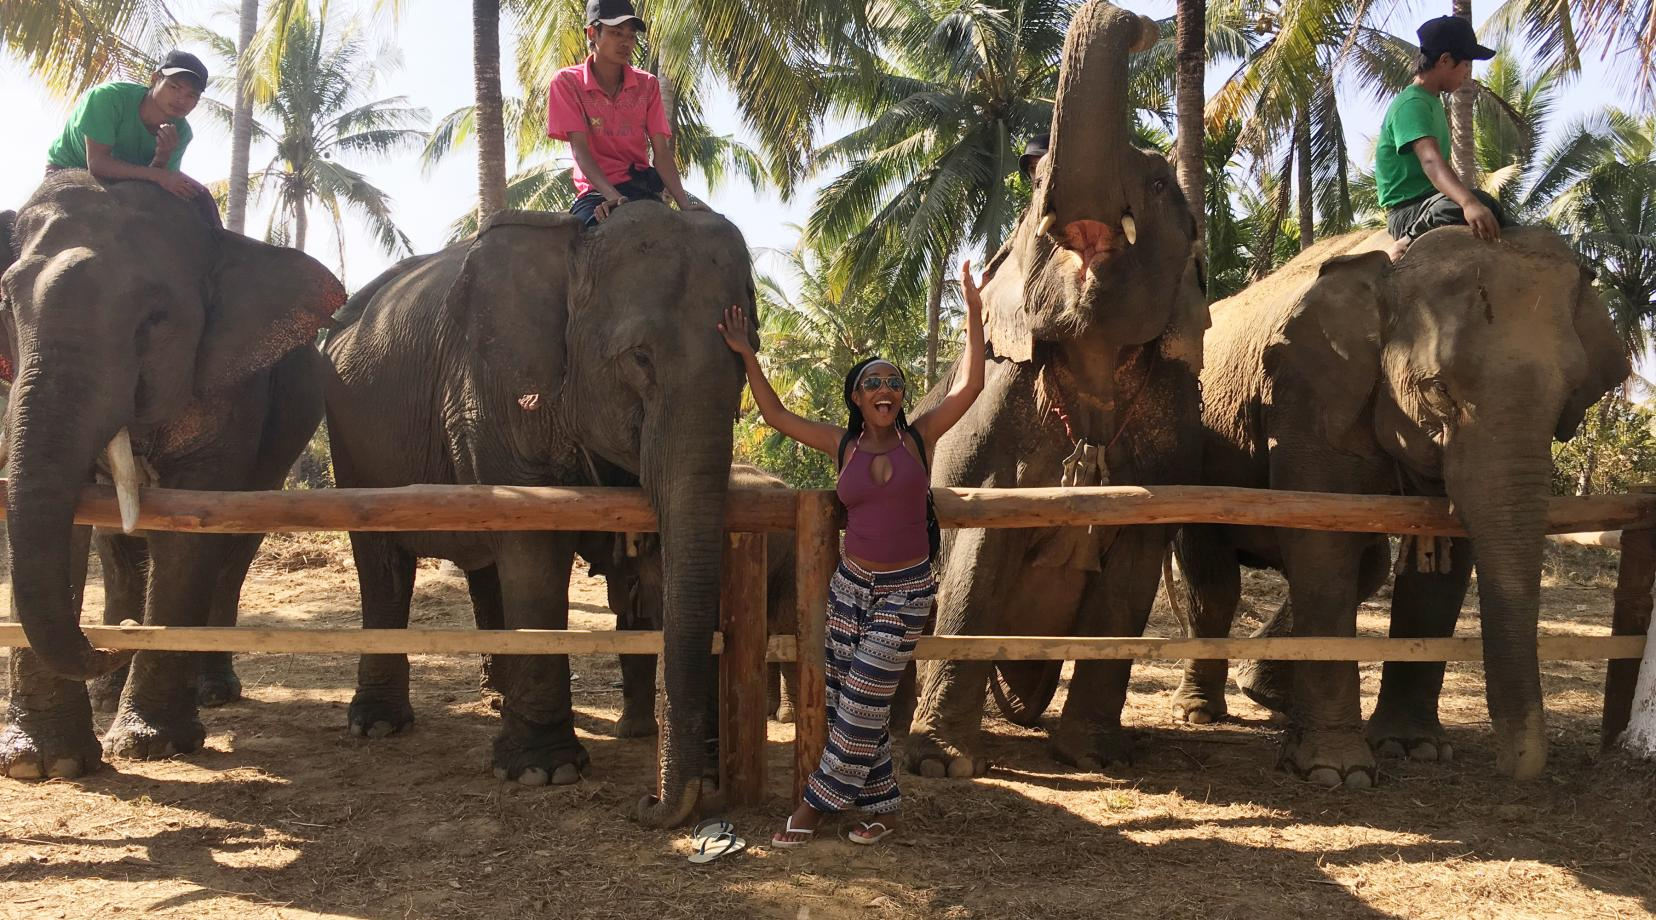 Not many students have an opportunity to take a break from classes and go hang out with elephants, but that is exactly what Deja Marsh did in the spring during her Semester at Sea study abroad experience.